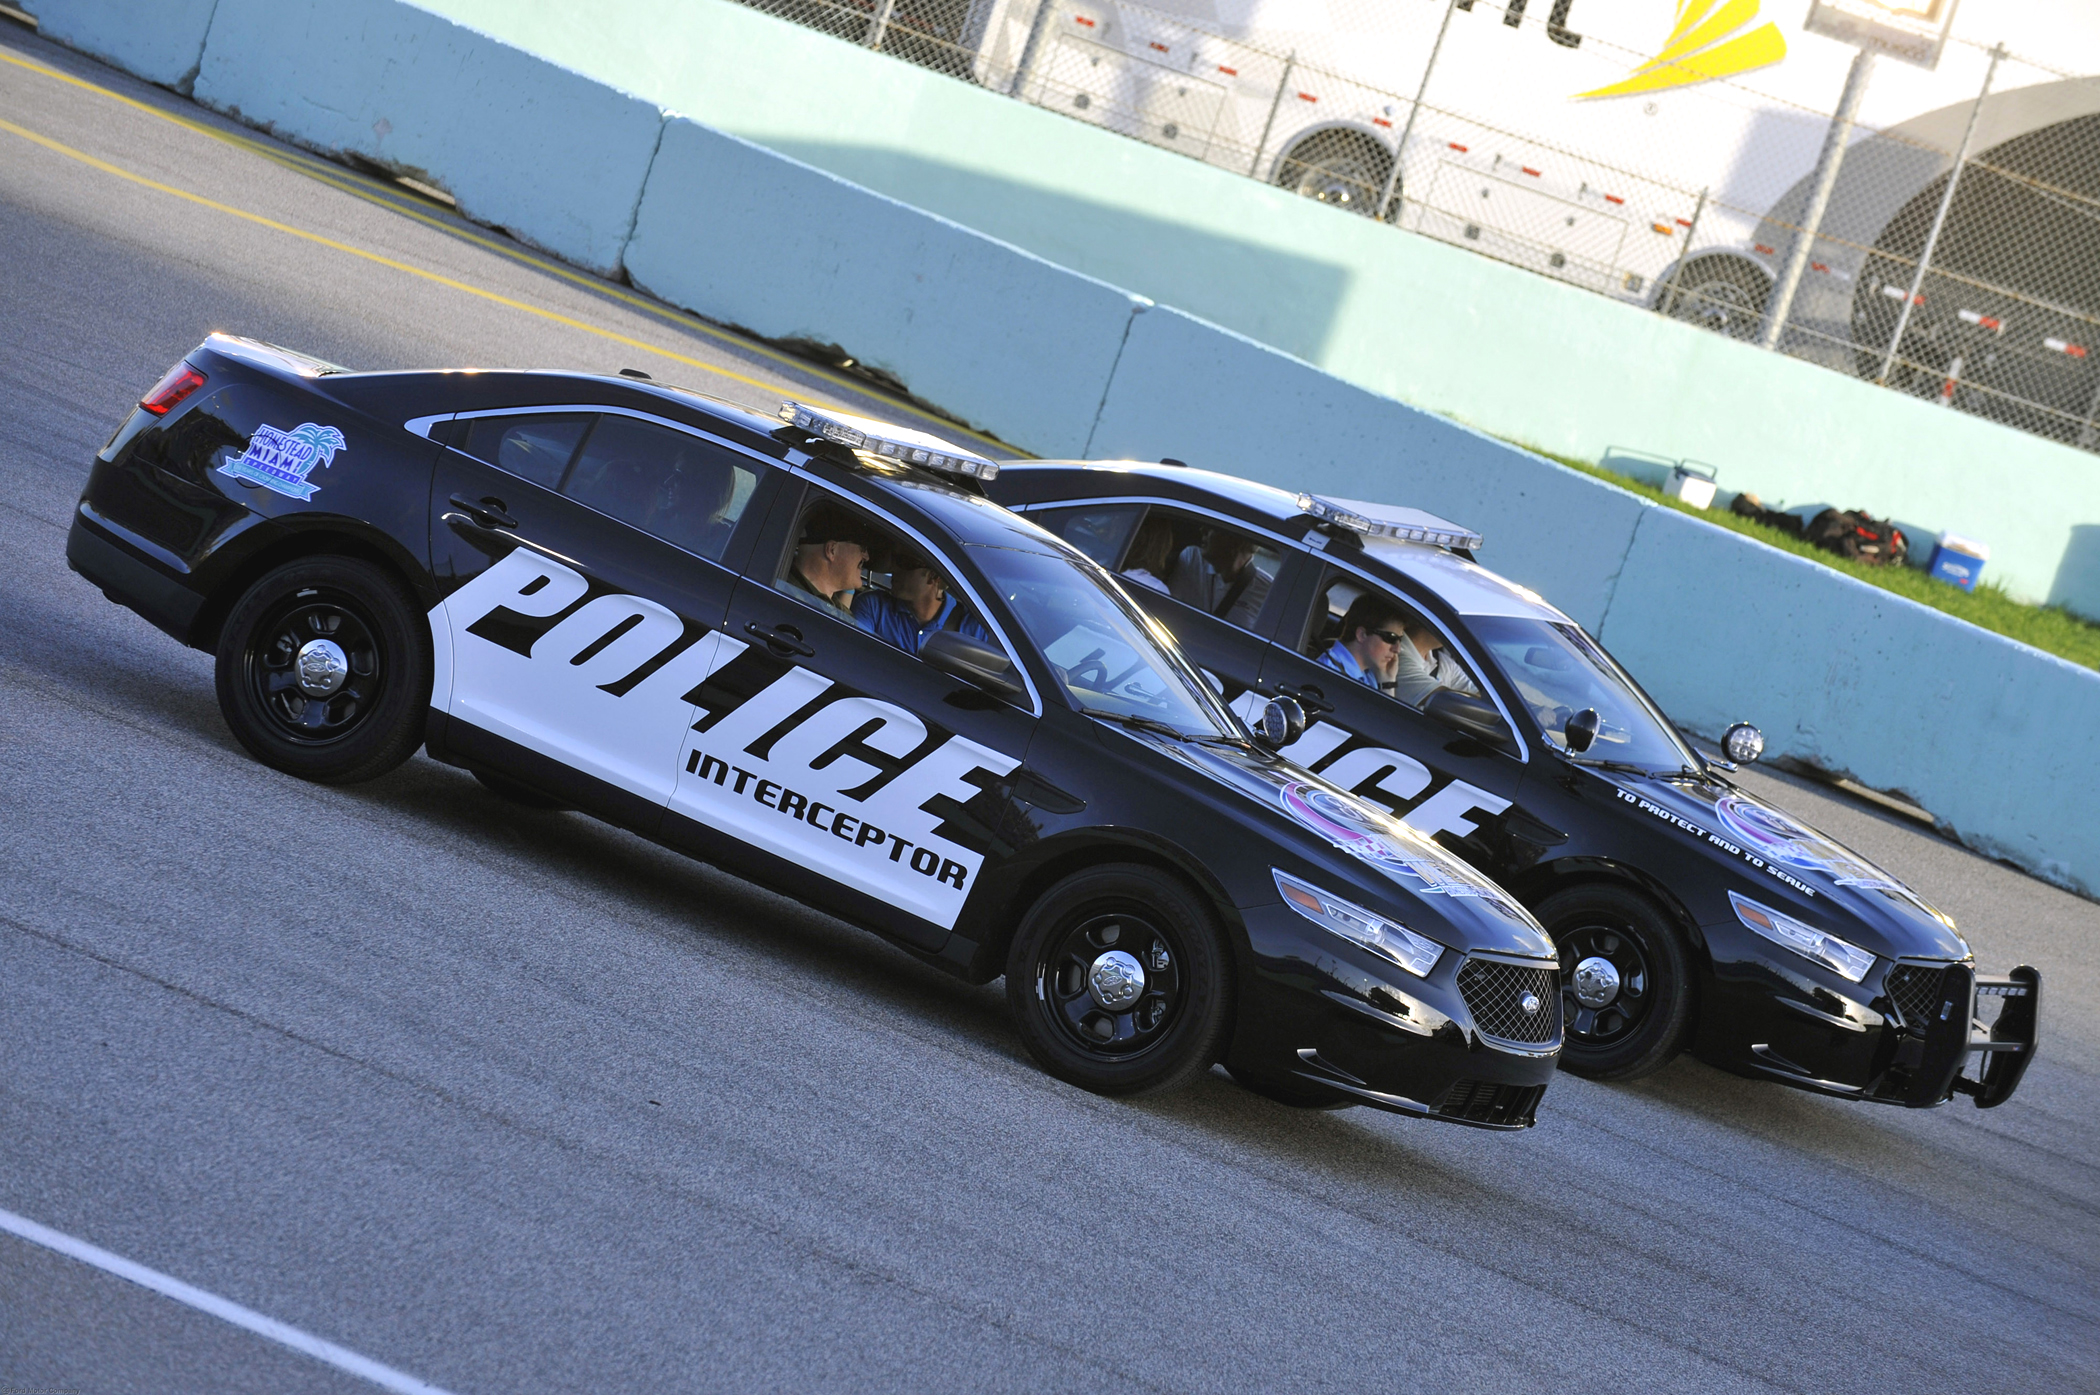 Manufacturer photo: Ford specifically designed and engineered an all-new Police Interceptor to handle the rigors of police work, including industry-leading powertrain, safety and technology innovations